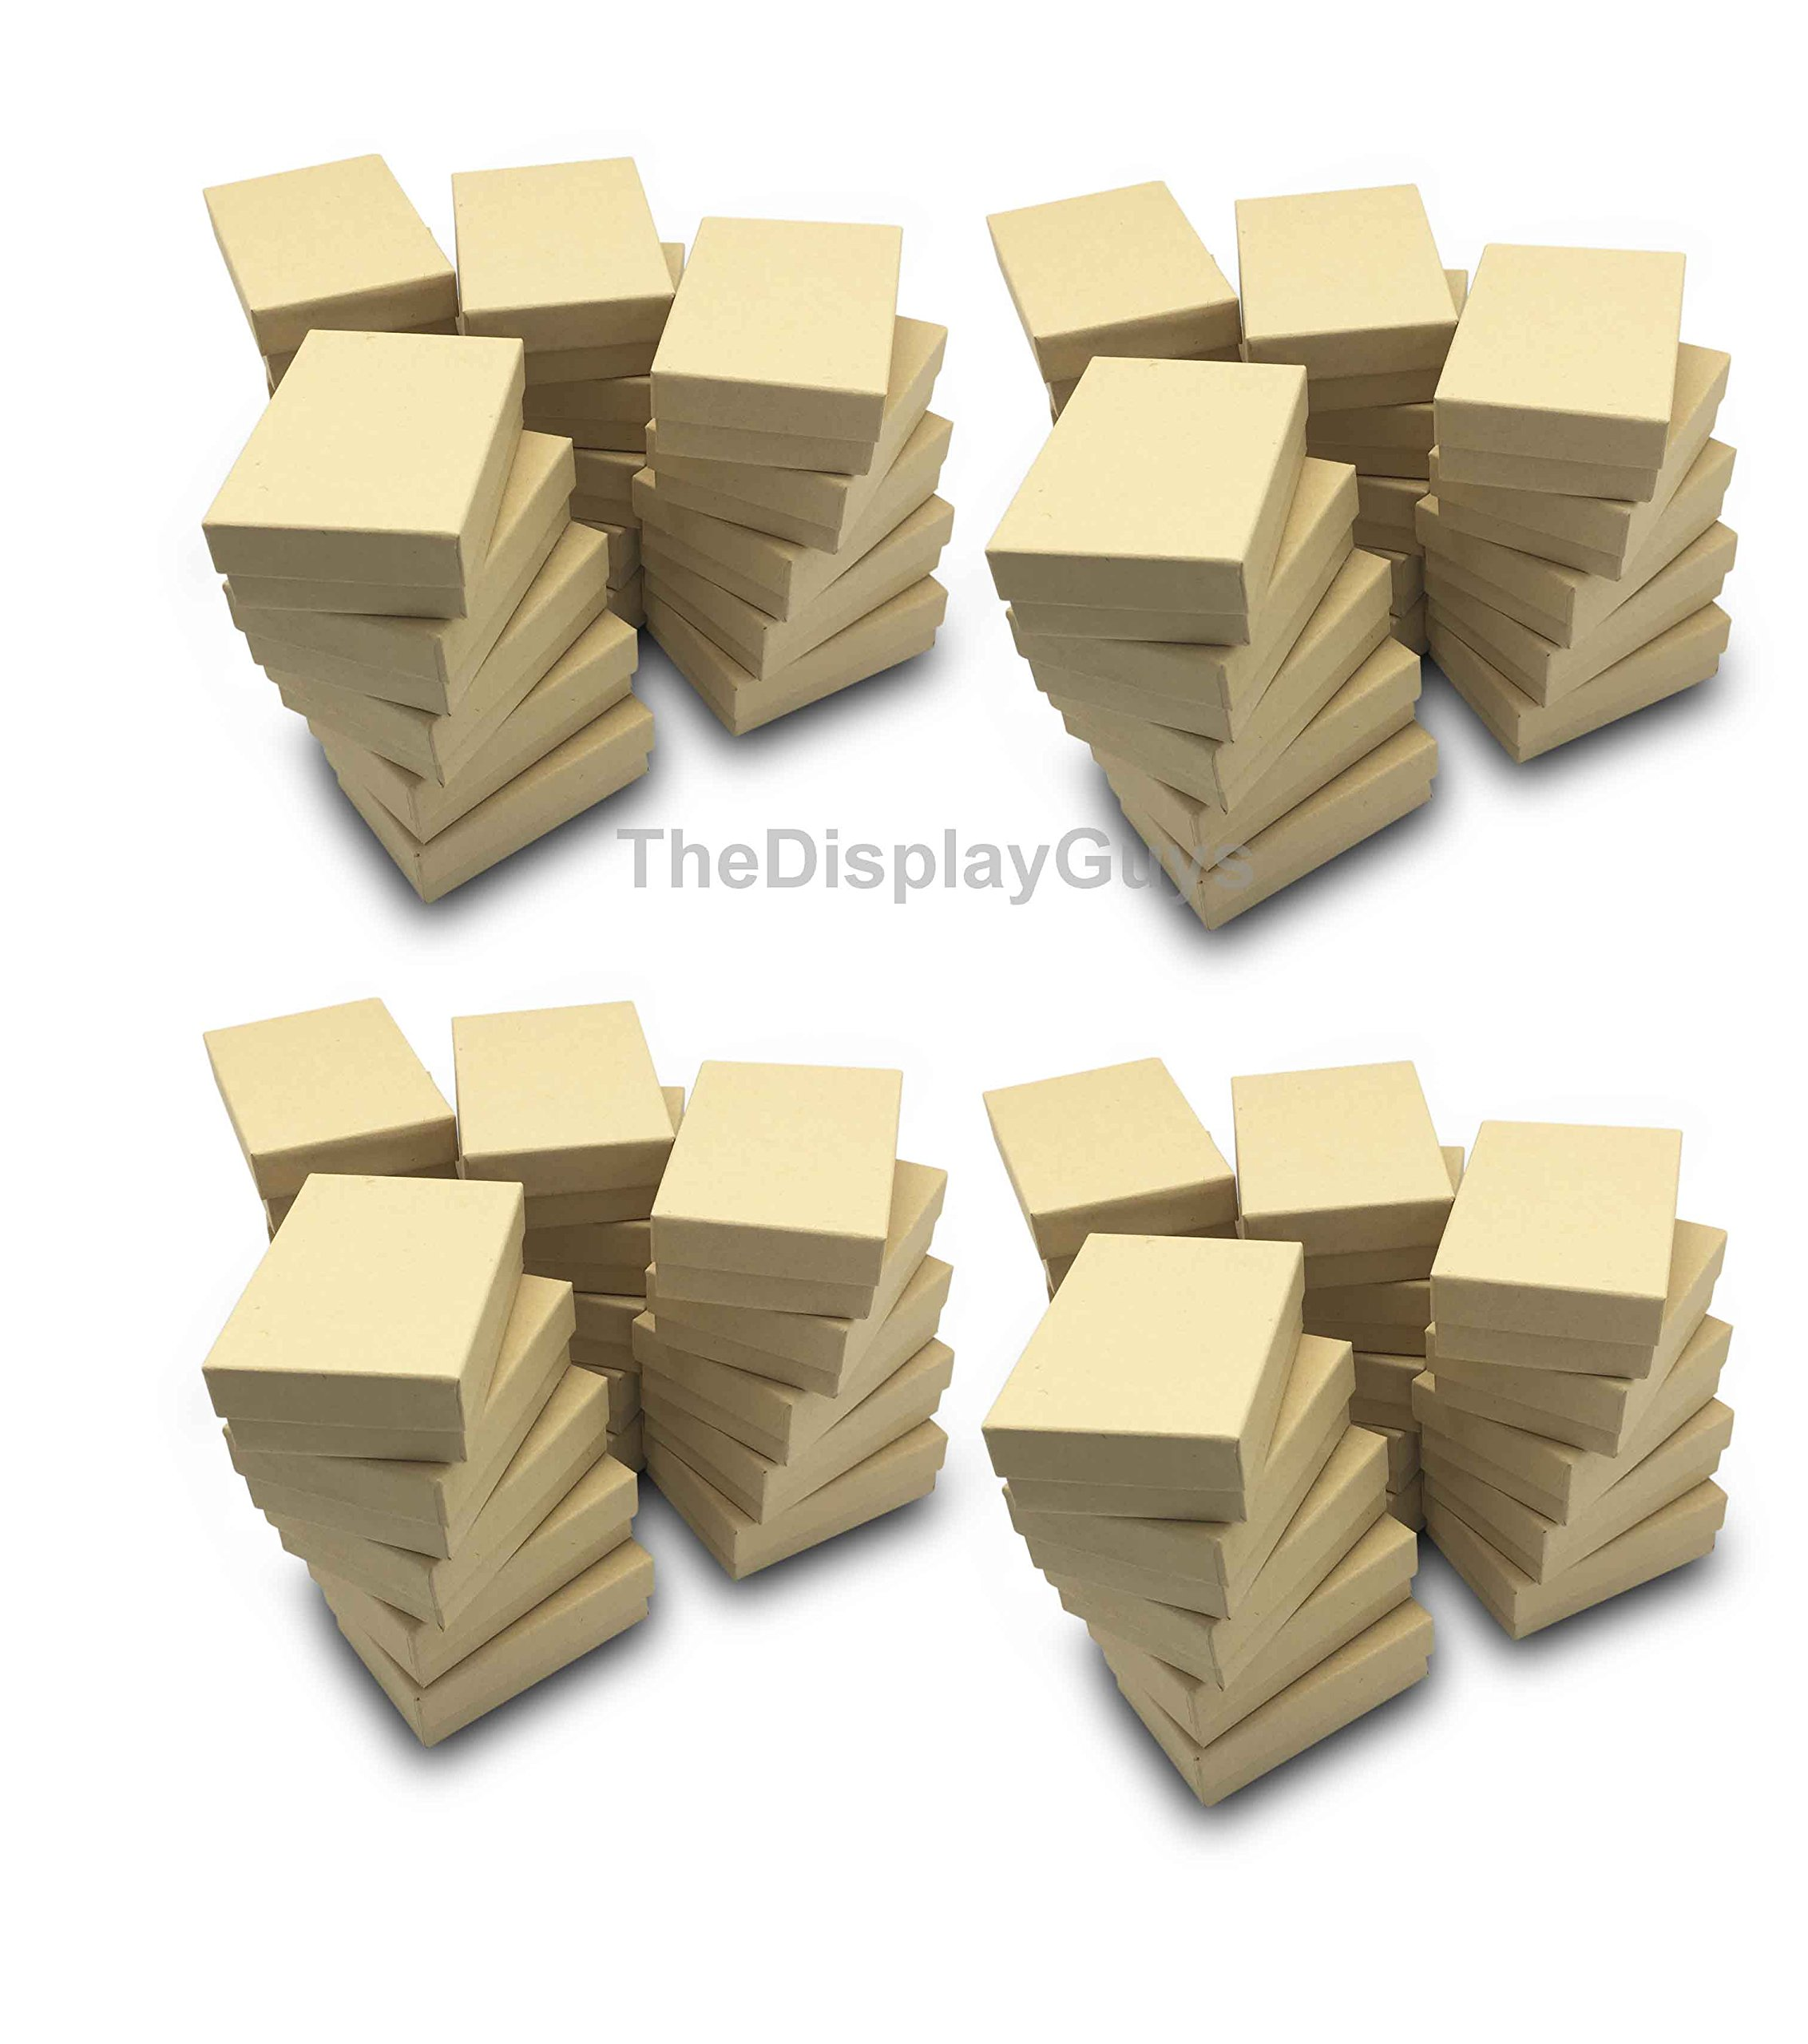 The Display Guys~ Pack of 100 Cotton Filled Cardboard Paper Kraft Jewelry Box Gift Case - Kraft Brown (3 1/4x2 1/4x1 inches #32) by The Display Guys